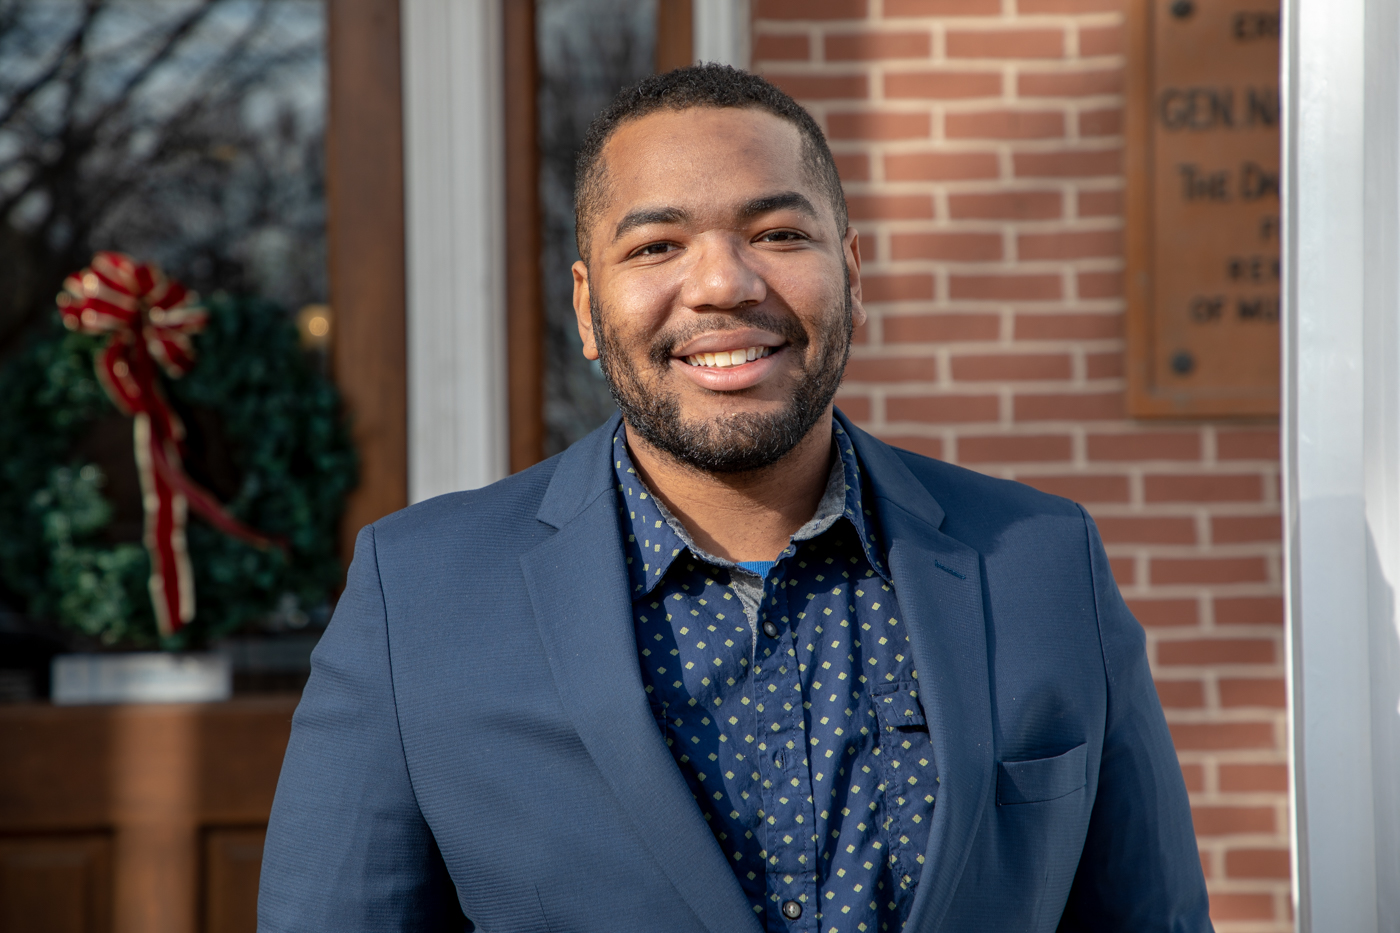 Gay State House Candidate in Murfreesboro Condemns Discriminatory Adoption Bill | LGBT,house,candidate,TN,Tennessee,Murfreesboro,adoption,gay,man,life,family,adopt